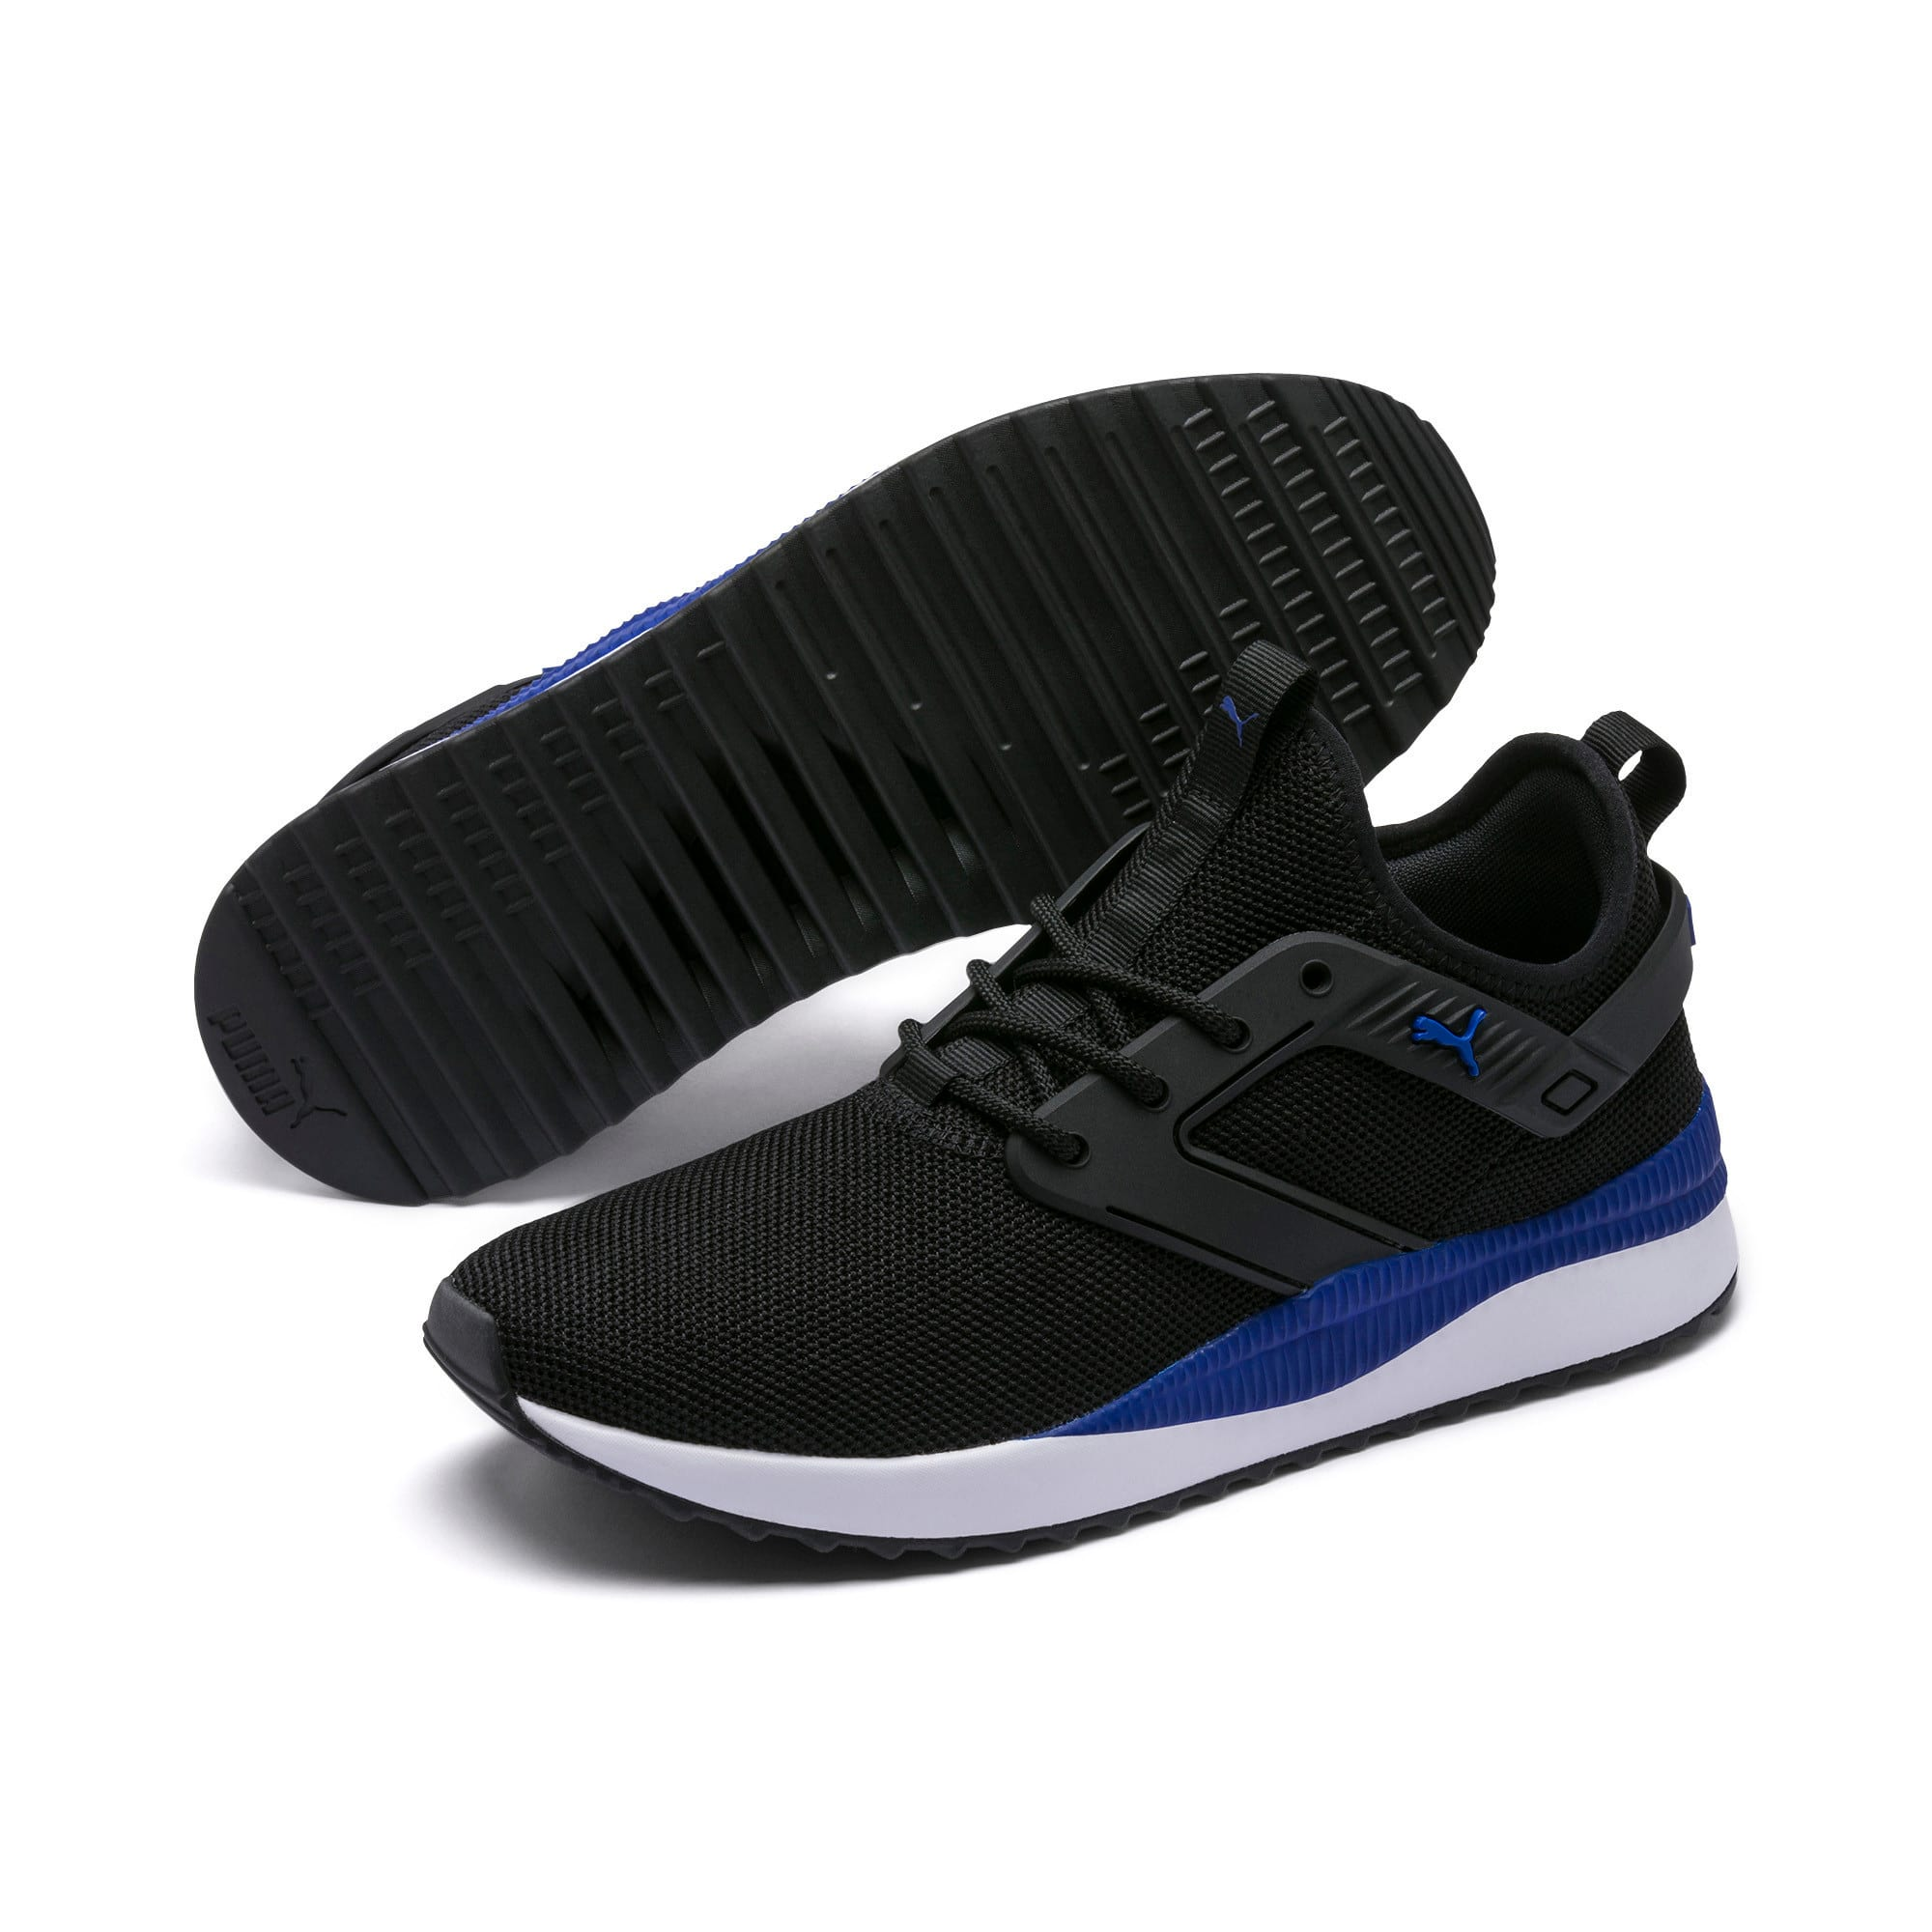 Thumbnail 5 of Pacer Next Excel Shoes, Puma Black-Surf The Web, medium-IND